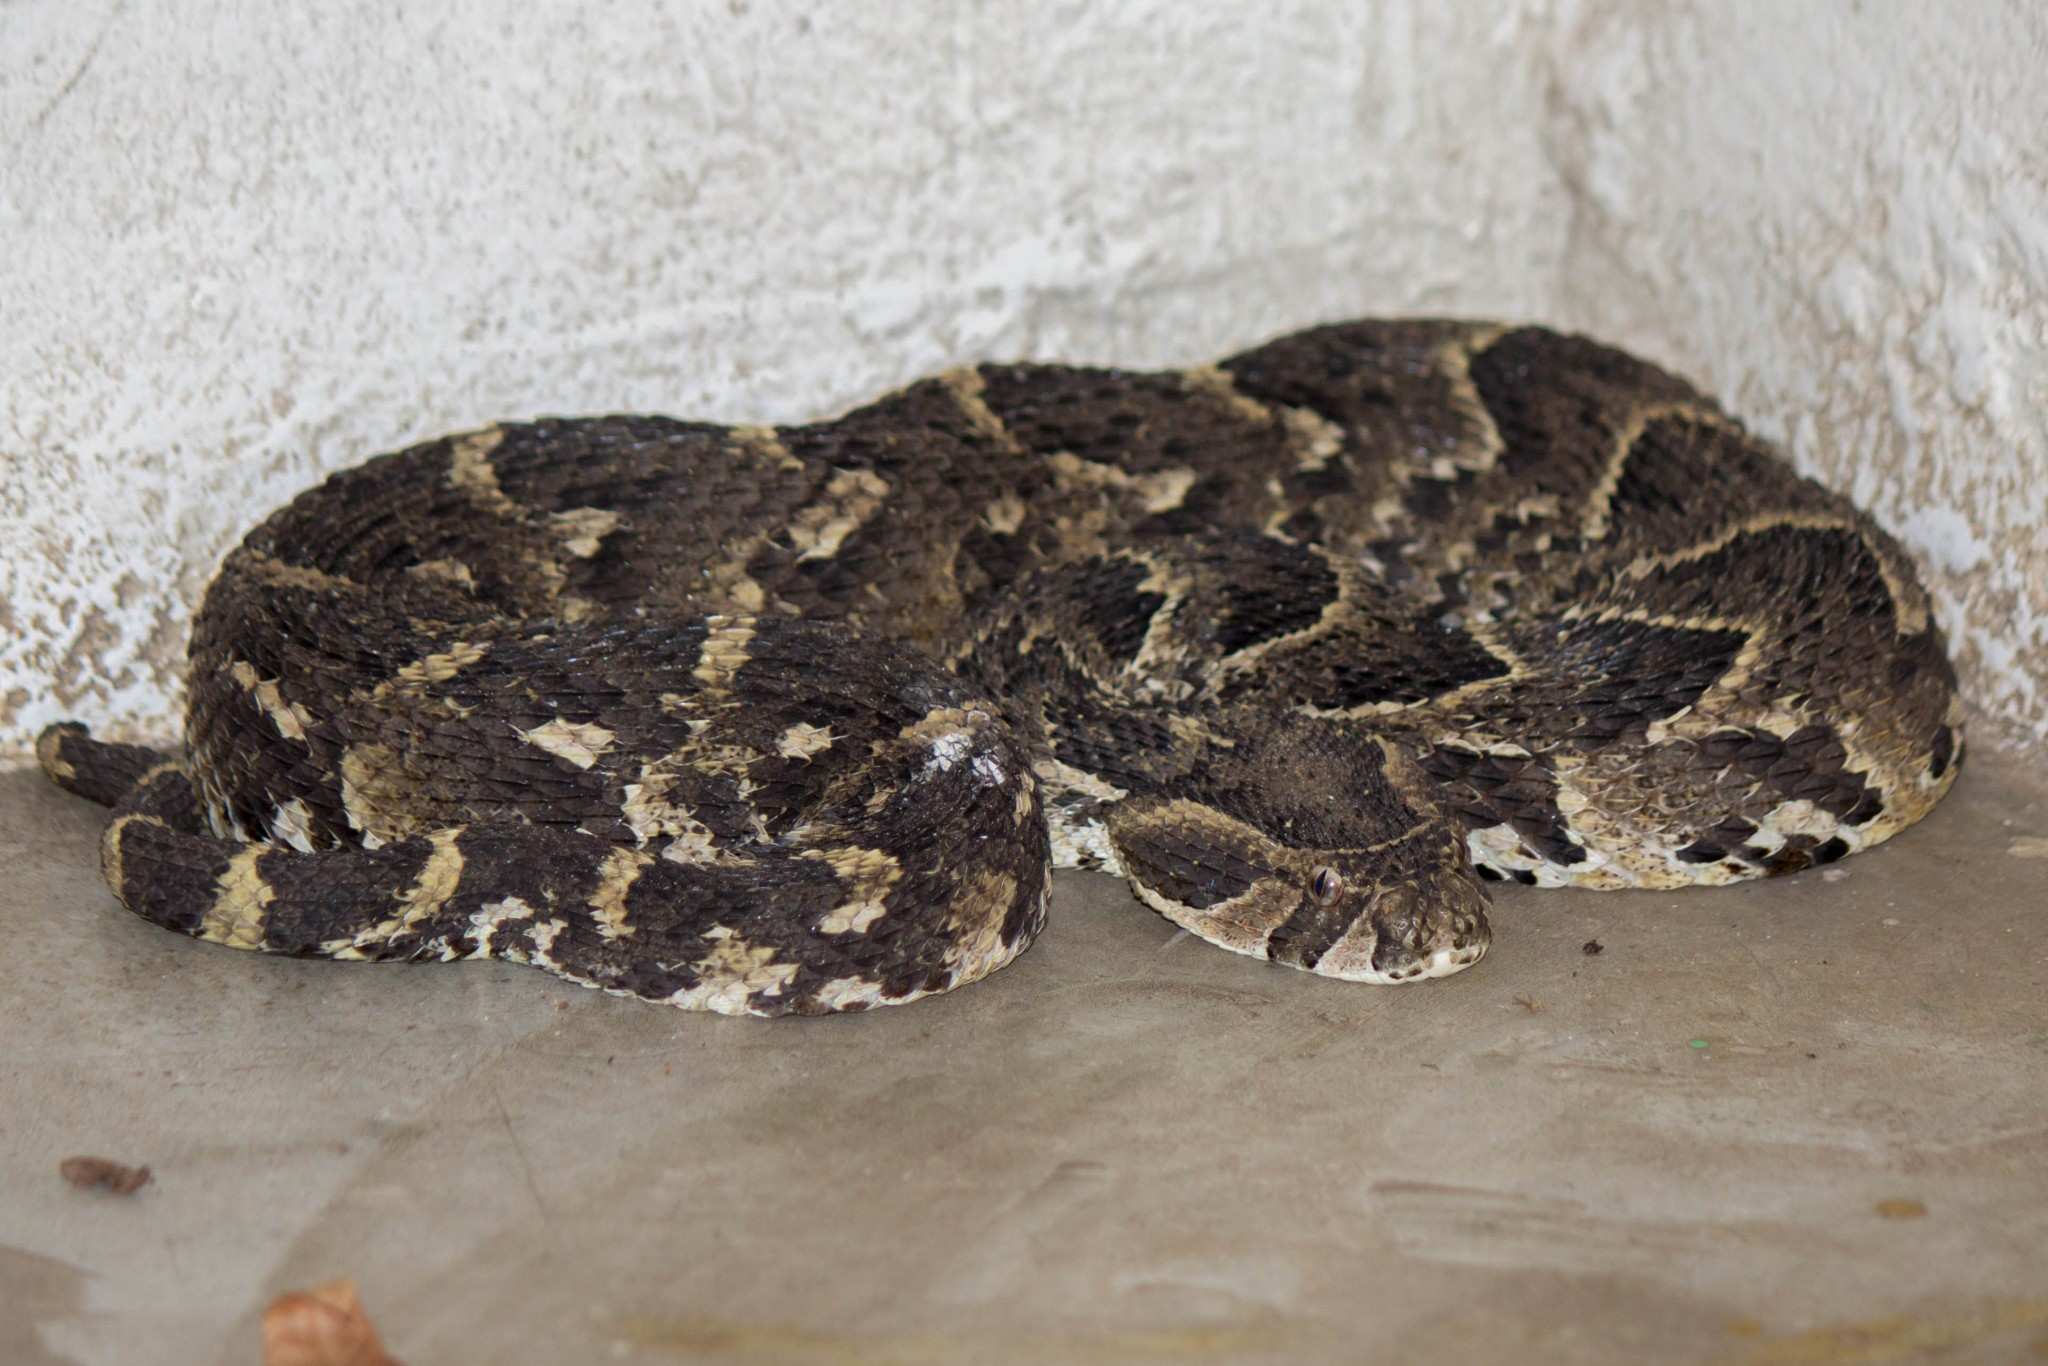 Puff Adder @ Tembe Elephant Park. Photo: Håvard Rosenlund